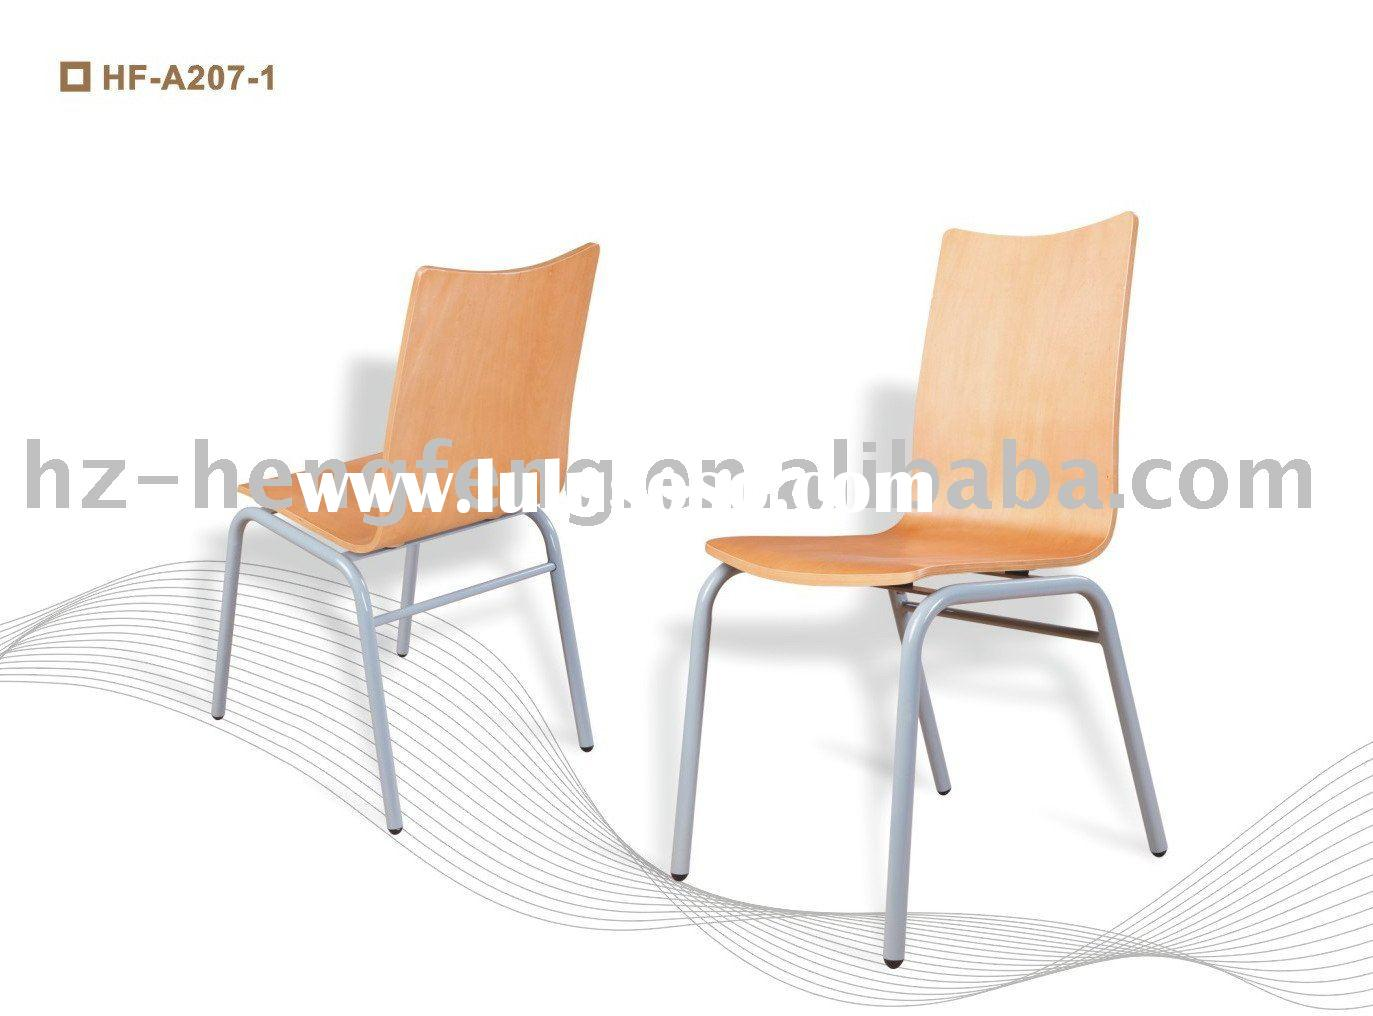 wood chairs,metal chair,single chair,dining chair,restaurant furniture,dining room furniture